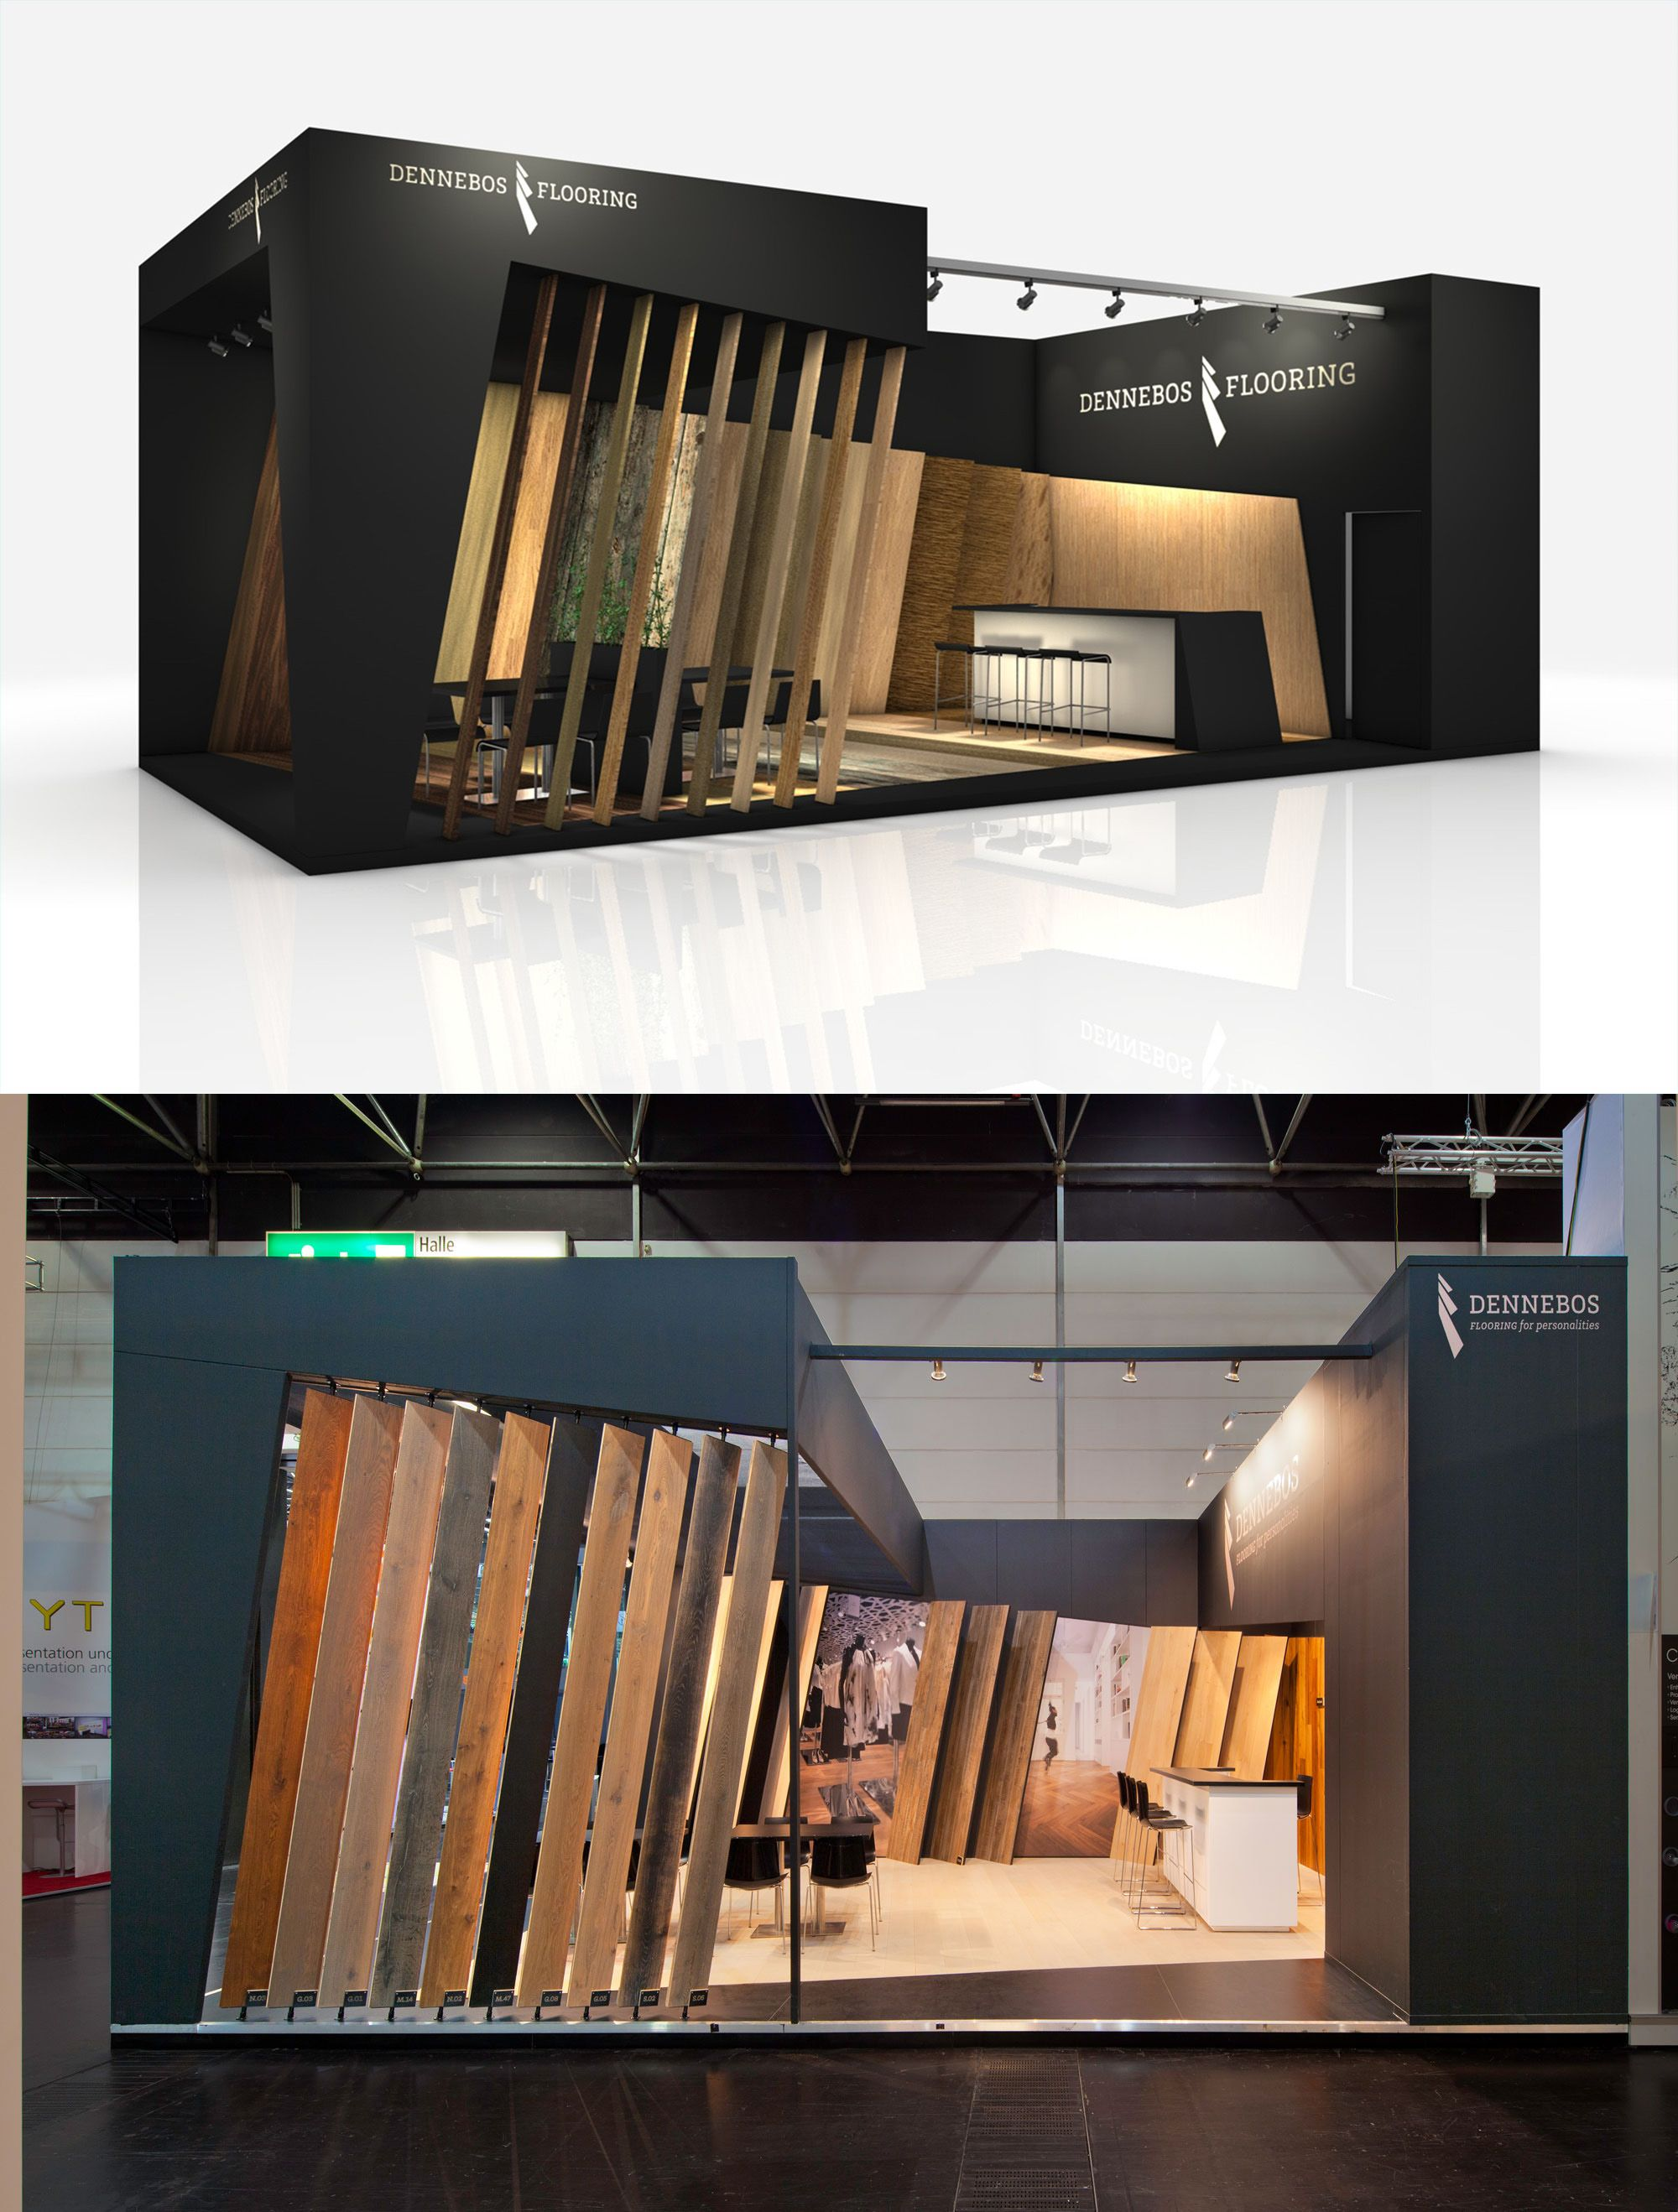 messe d sseldorf messebau pinterest messe d sseldorf d sseldorf und messest nde. Black Bedroom Furniture Sets. Home Design Ideas